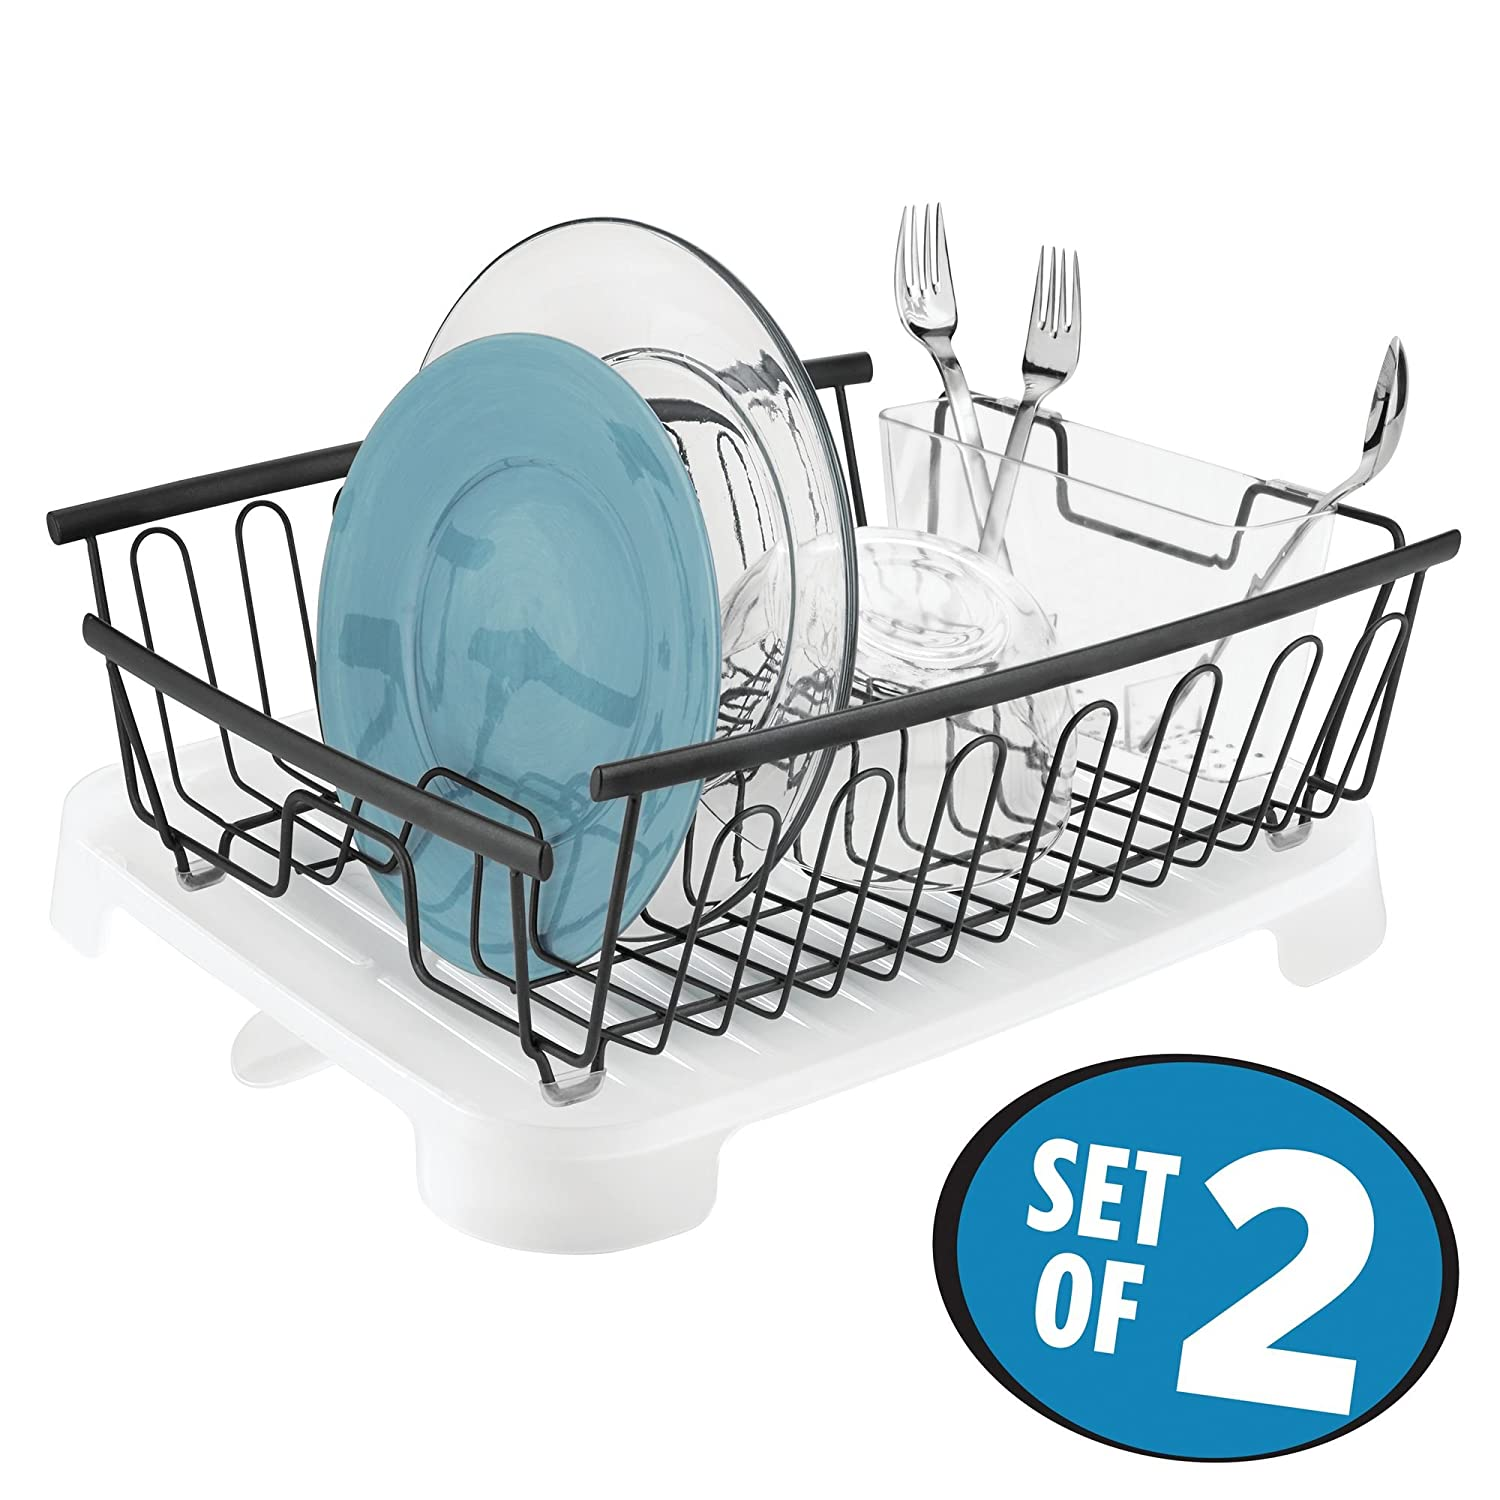 Amazon.com: mDesign Large Kitchen Countertop, Sink Dish Drying Rack ...